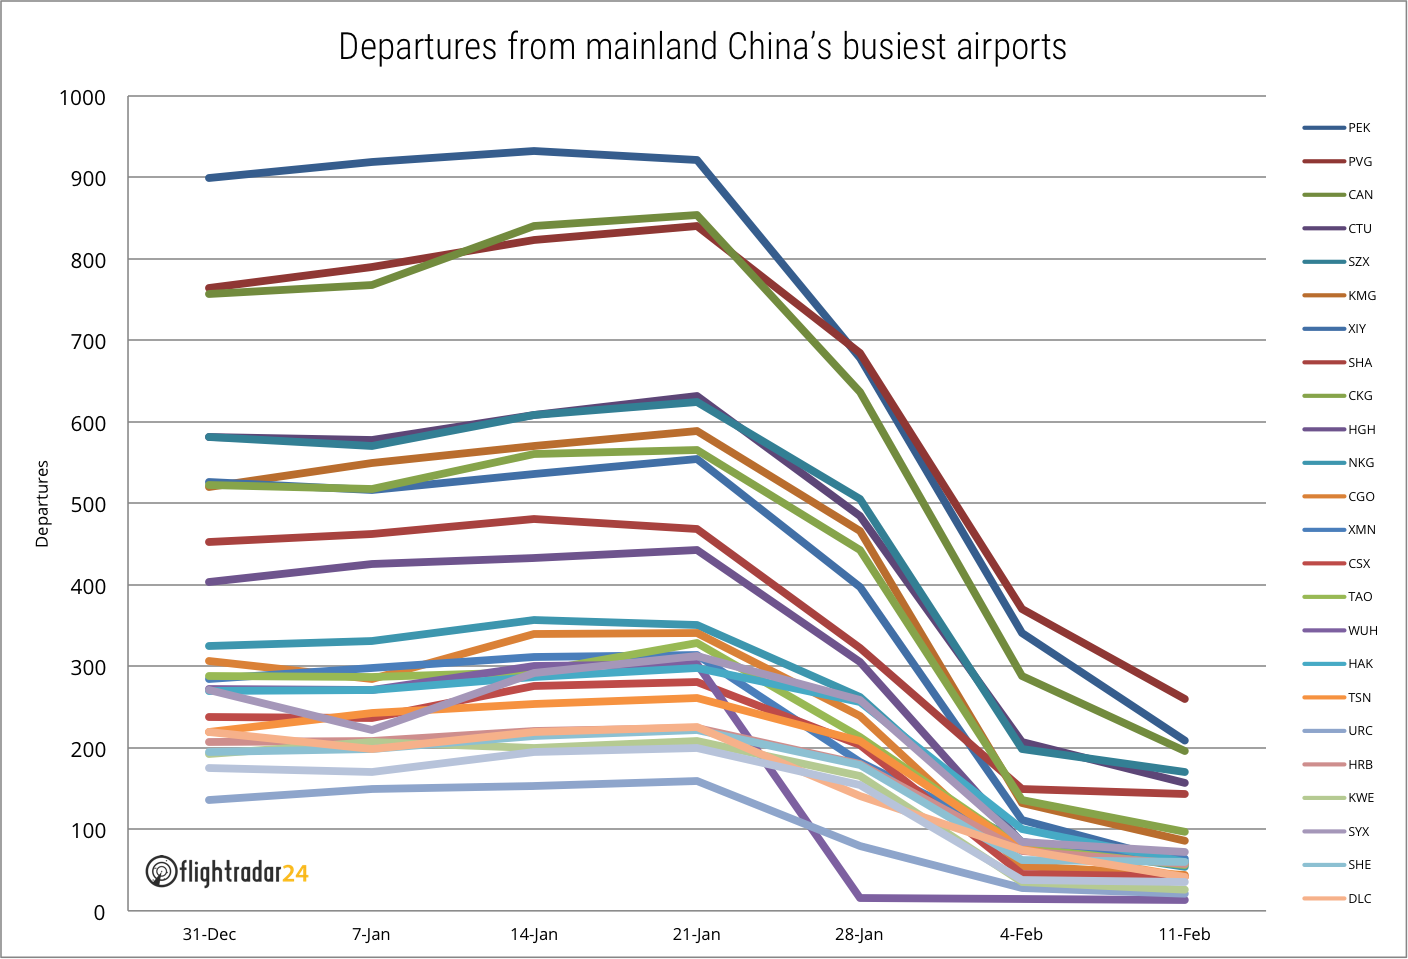 Departures from 25 busiest Chinese airports